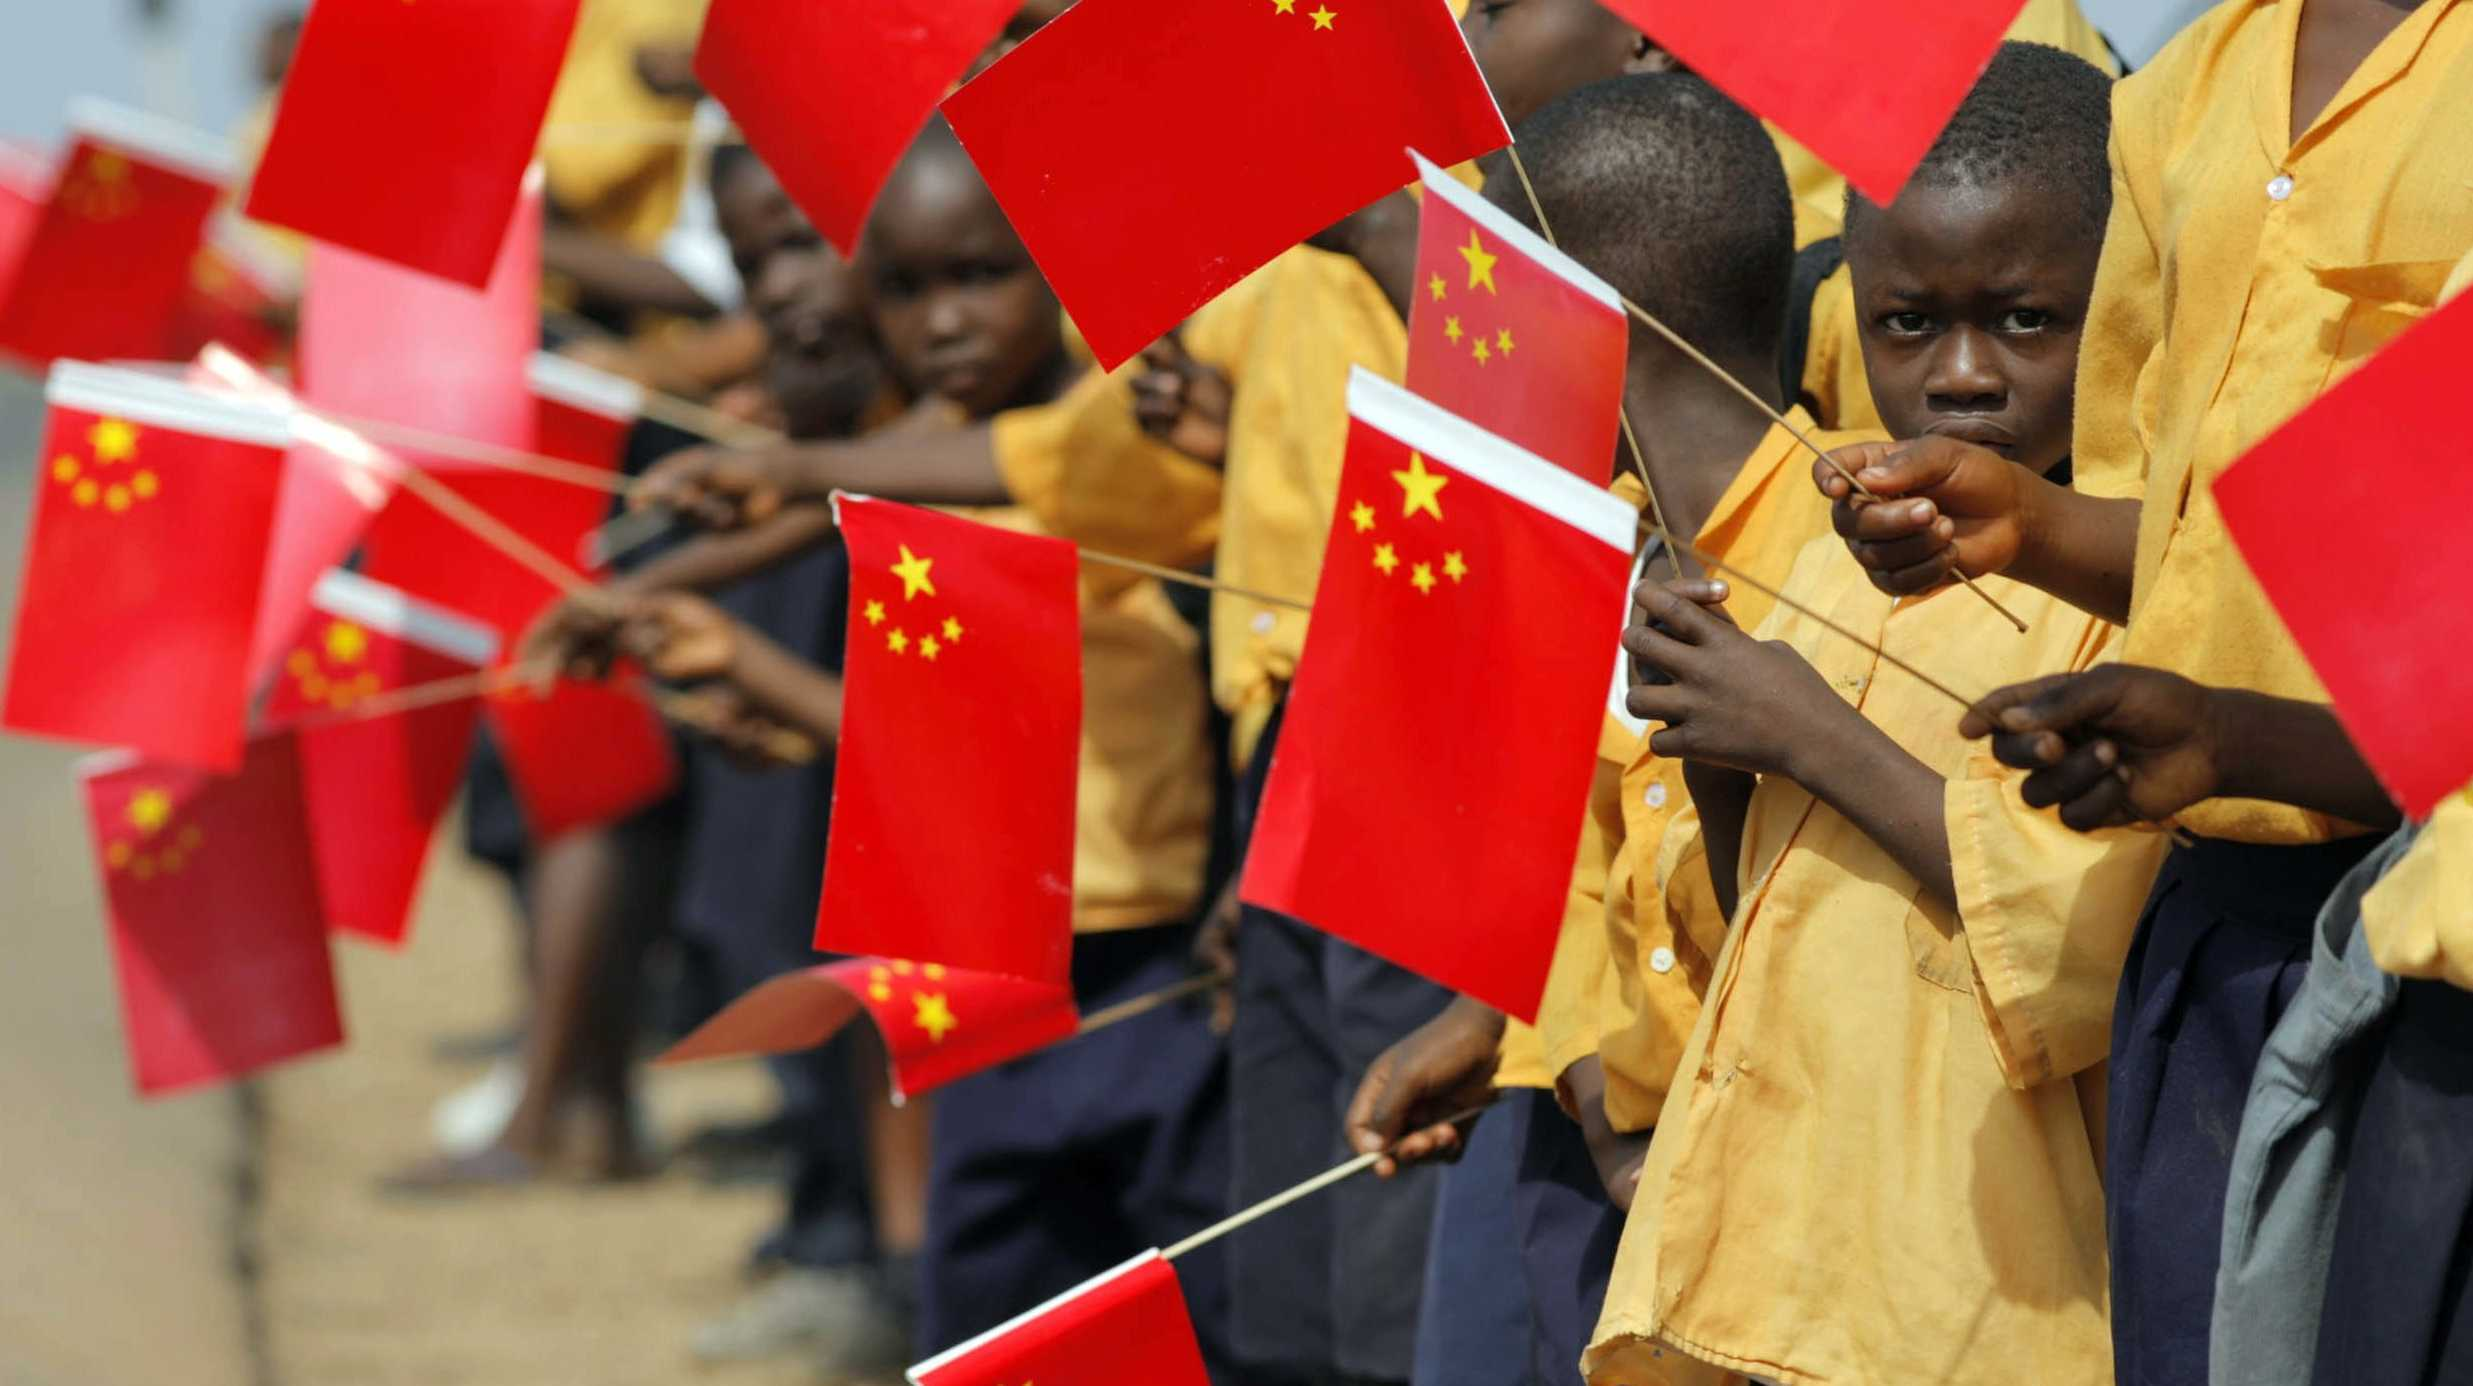 Cina-Africa: work in progress - GEOPOLITICA.info